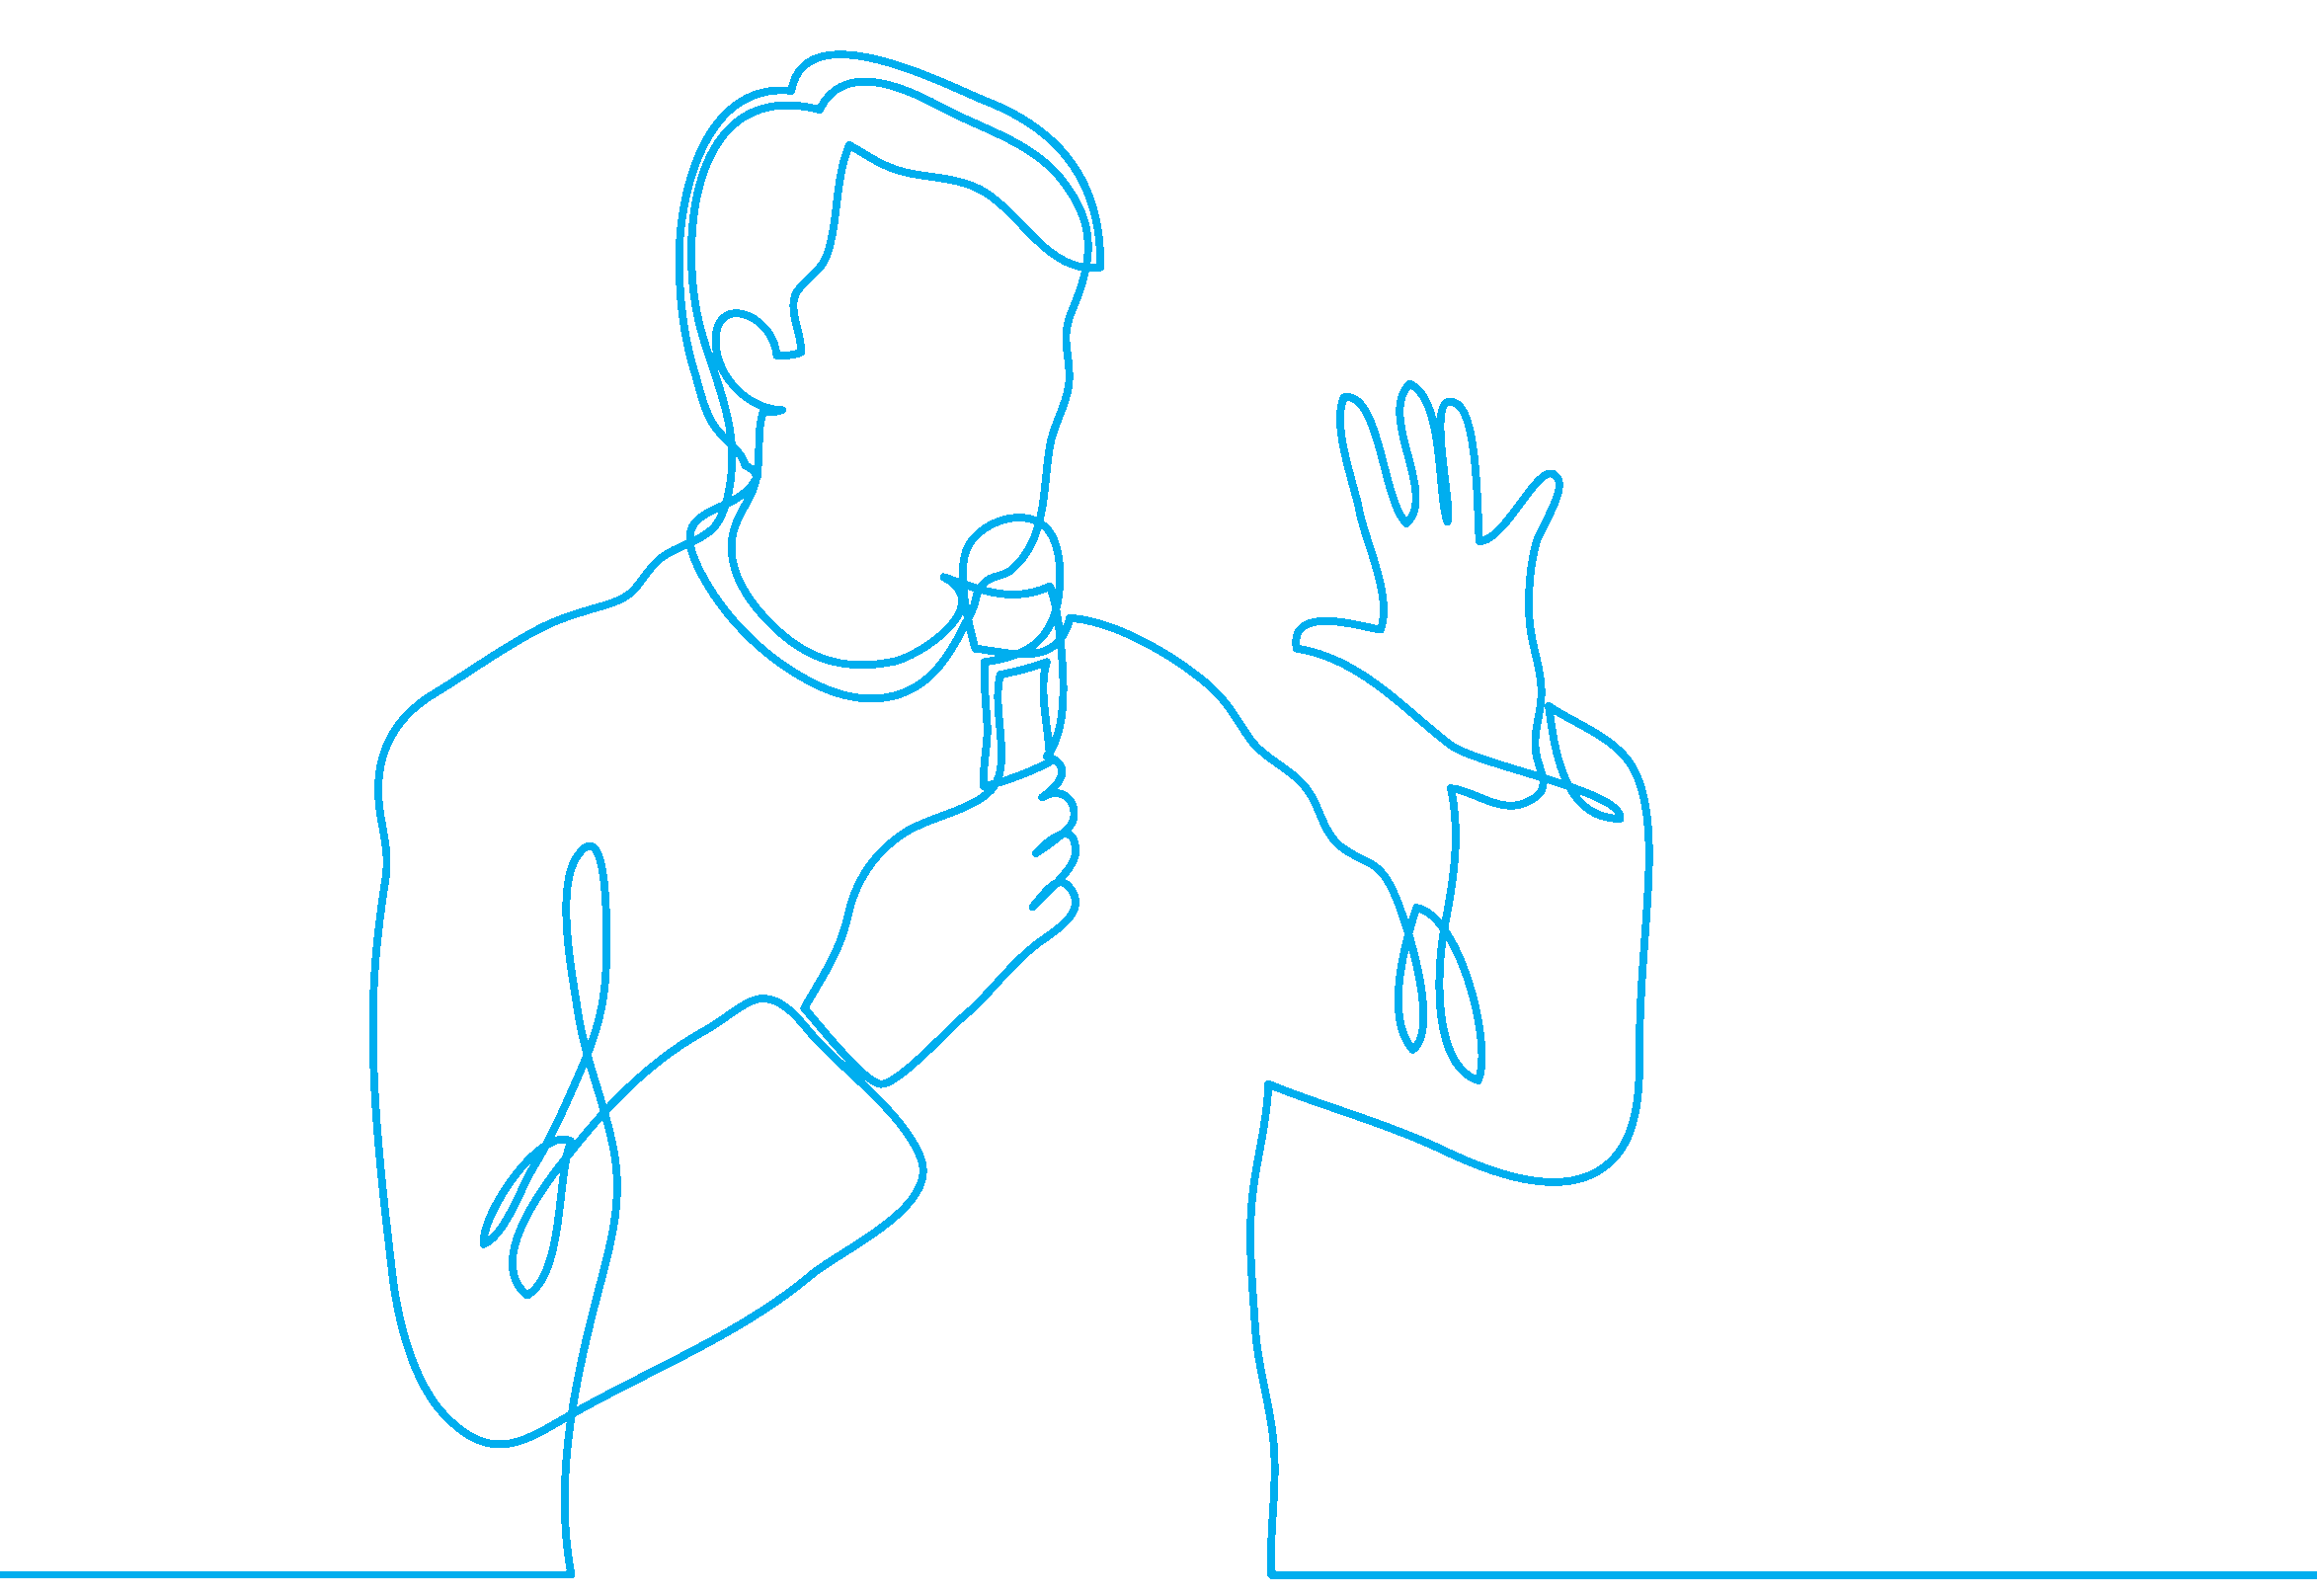 man with microphone illustration